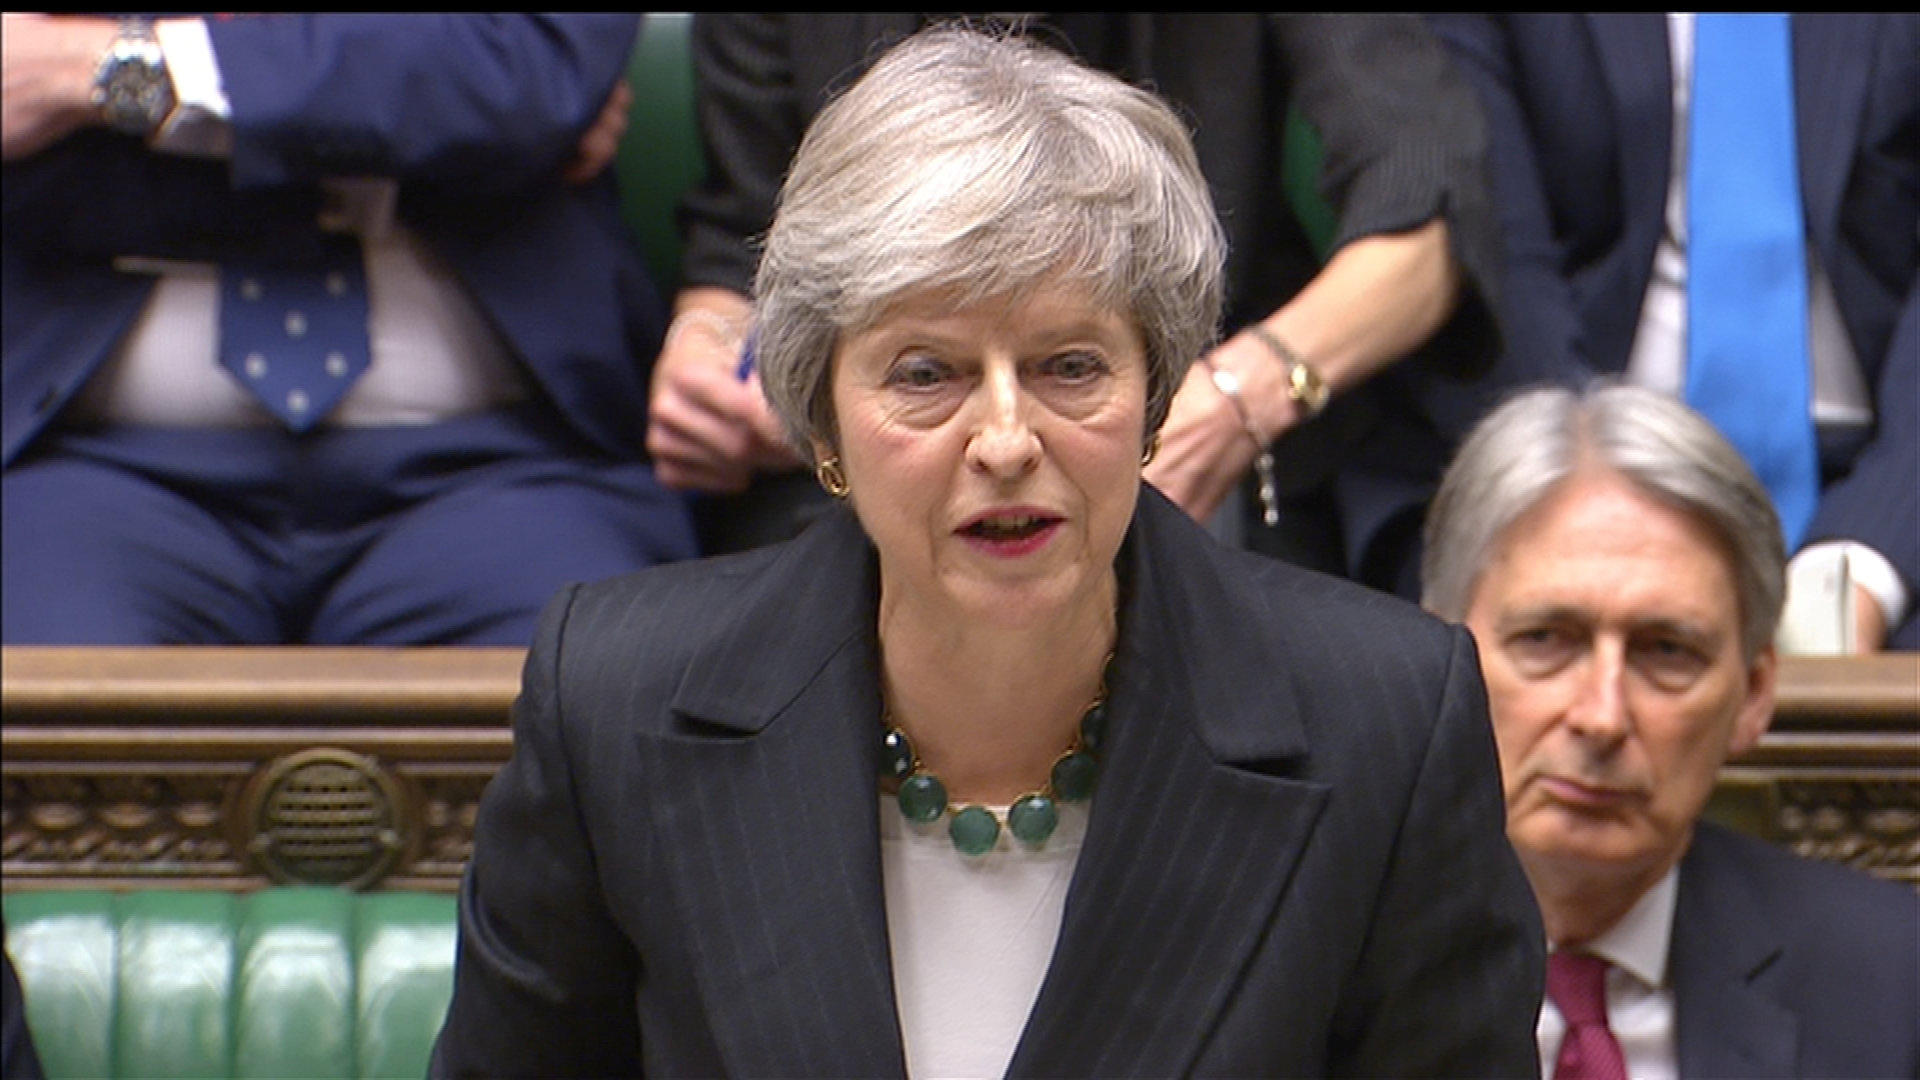 aca1cfec0b Brexit vote news: Uncertainty mounts as Theresa May delays key ...